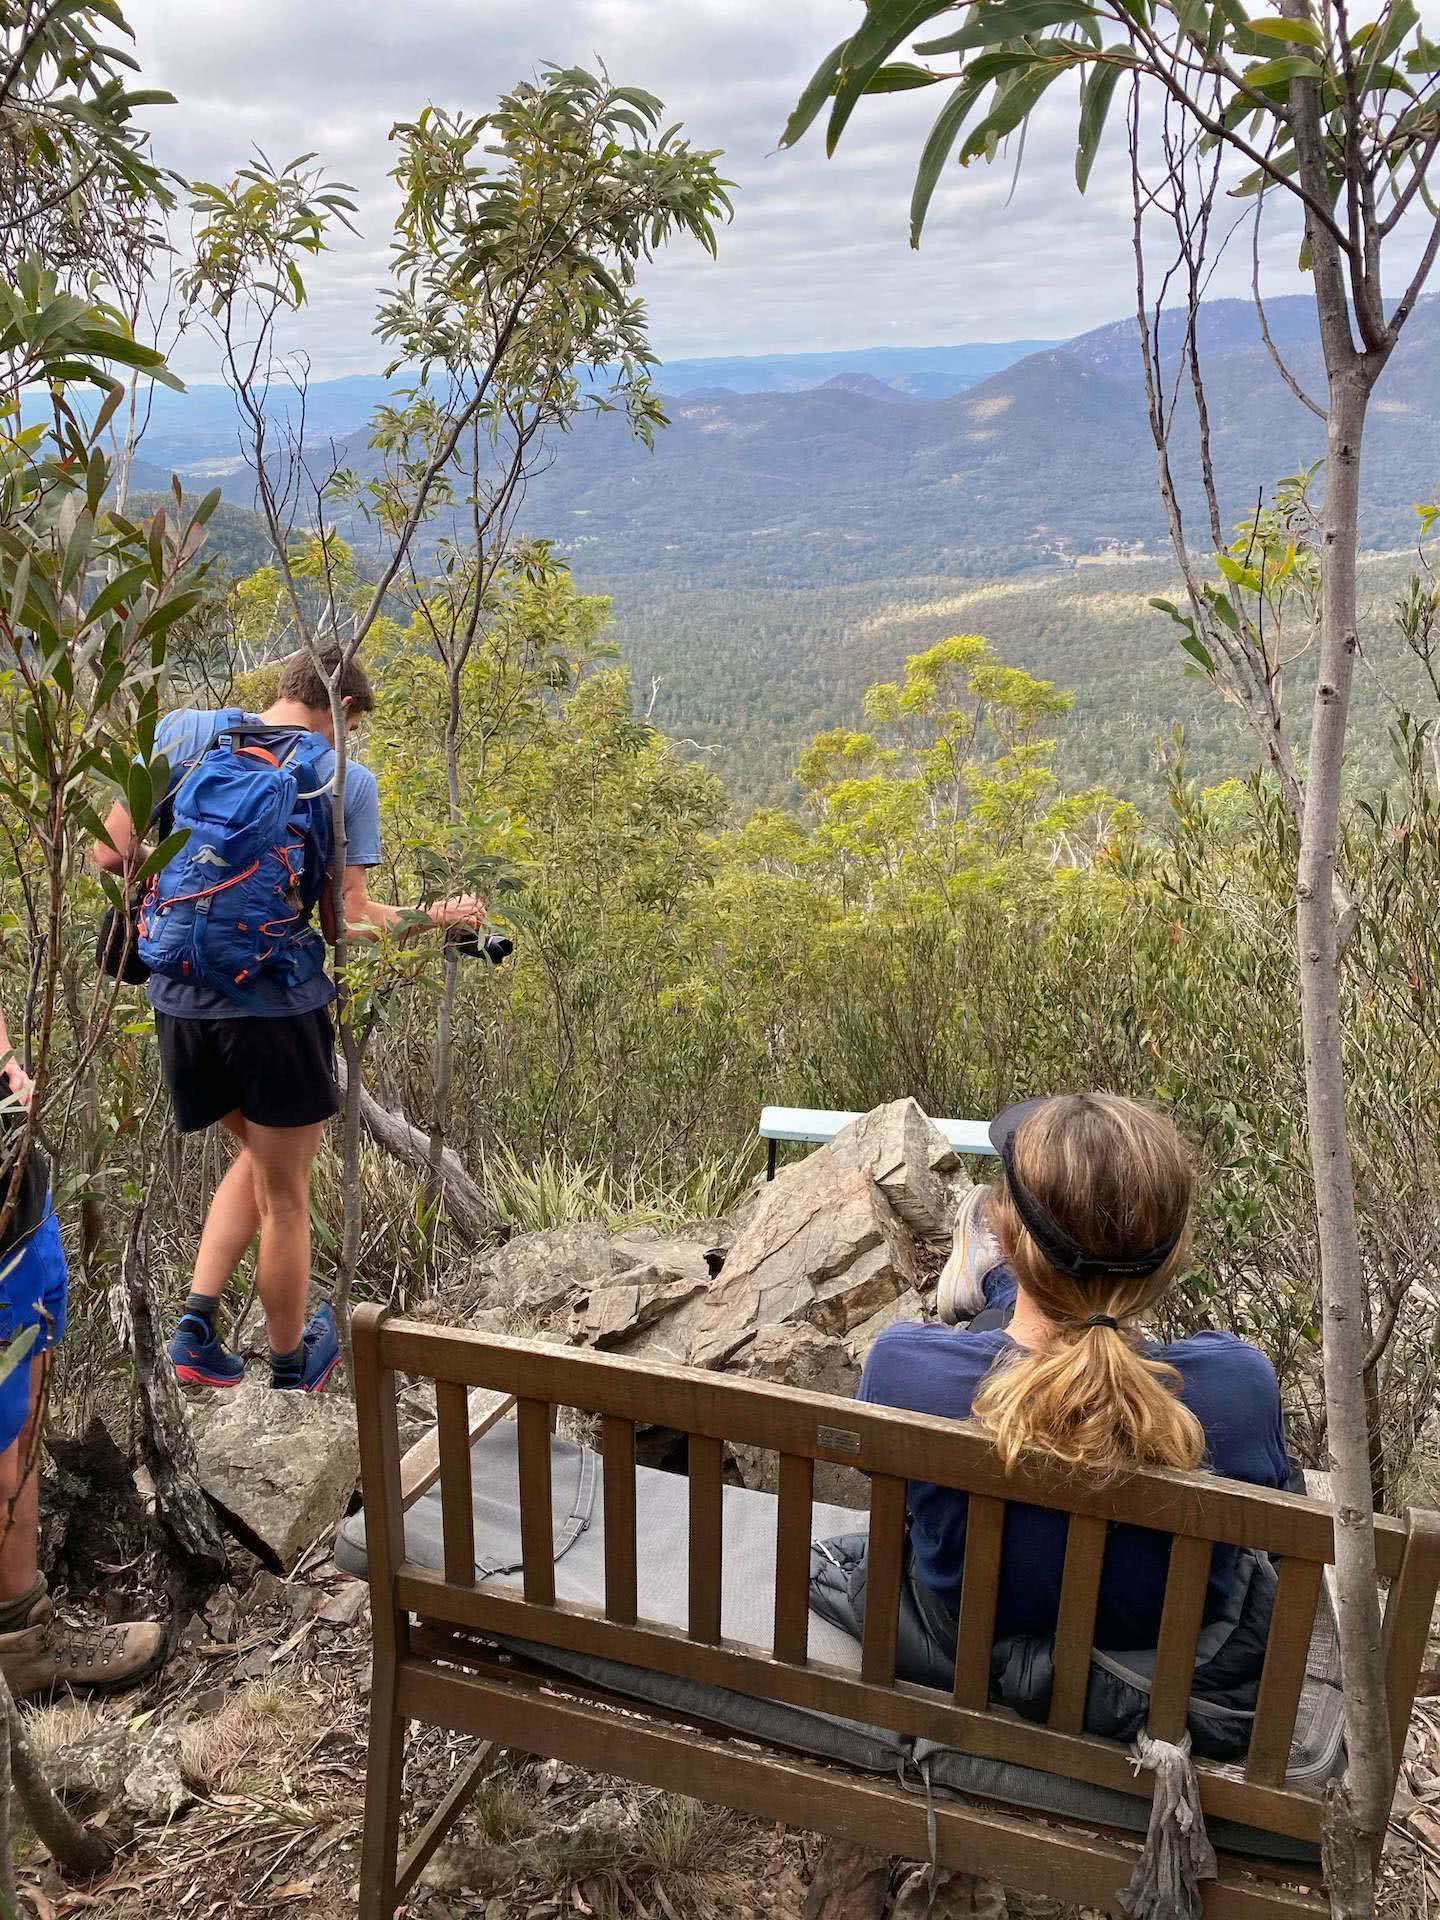 Route Guide, Peak Hopping Across Tidbinbilla Mountain, oliver Lilford, canberra, ACT, chair